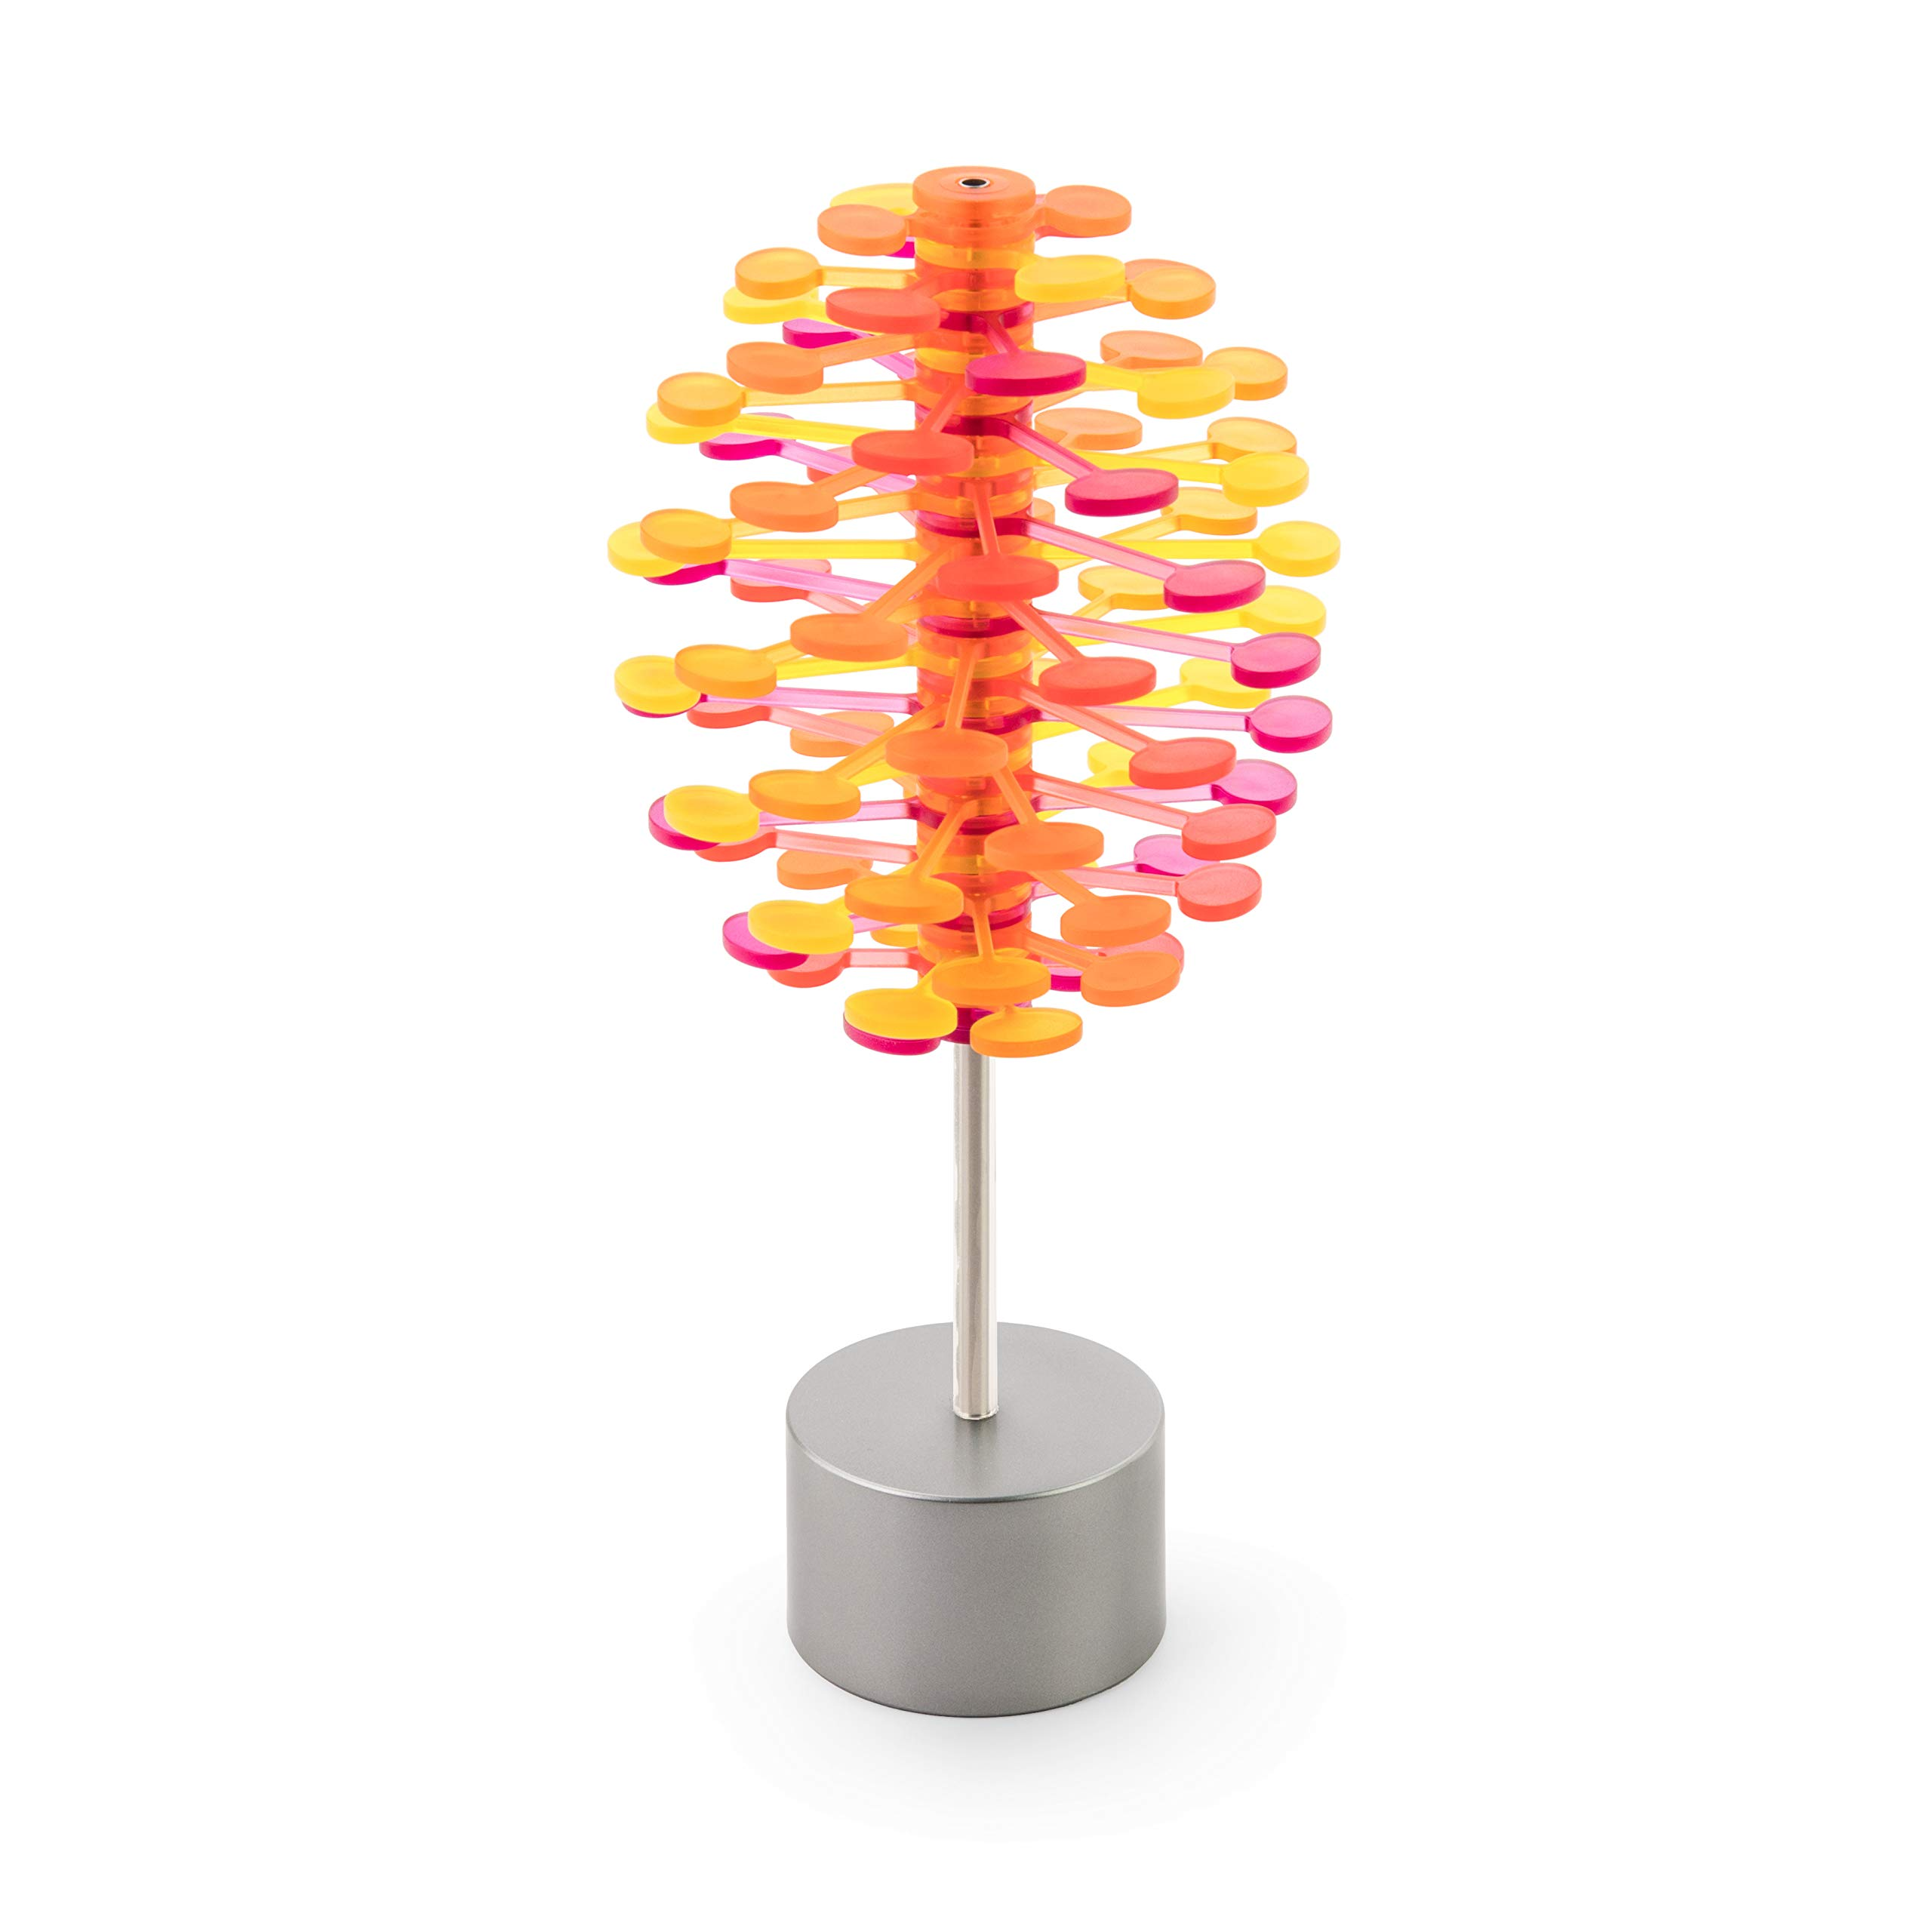 playableART A0456 Lollipopter - Mango Fandango Translucent (Domed Tube Packaging) Toy, Large by playableART (Image #2)